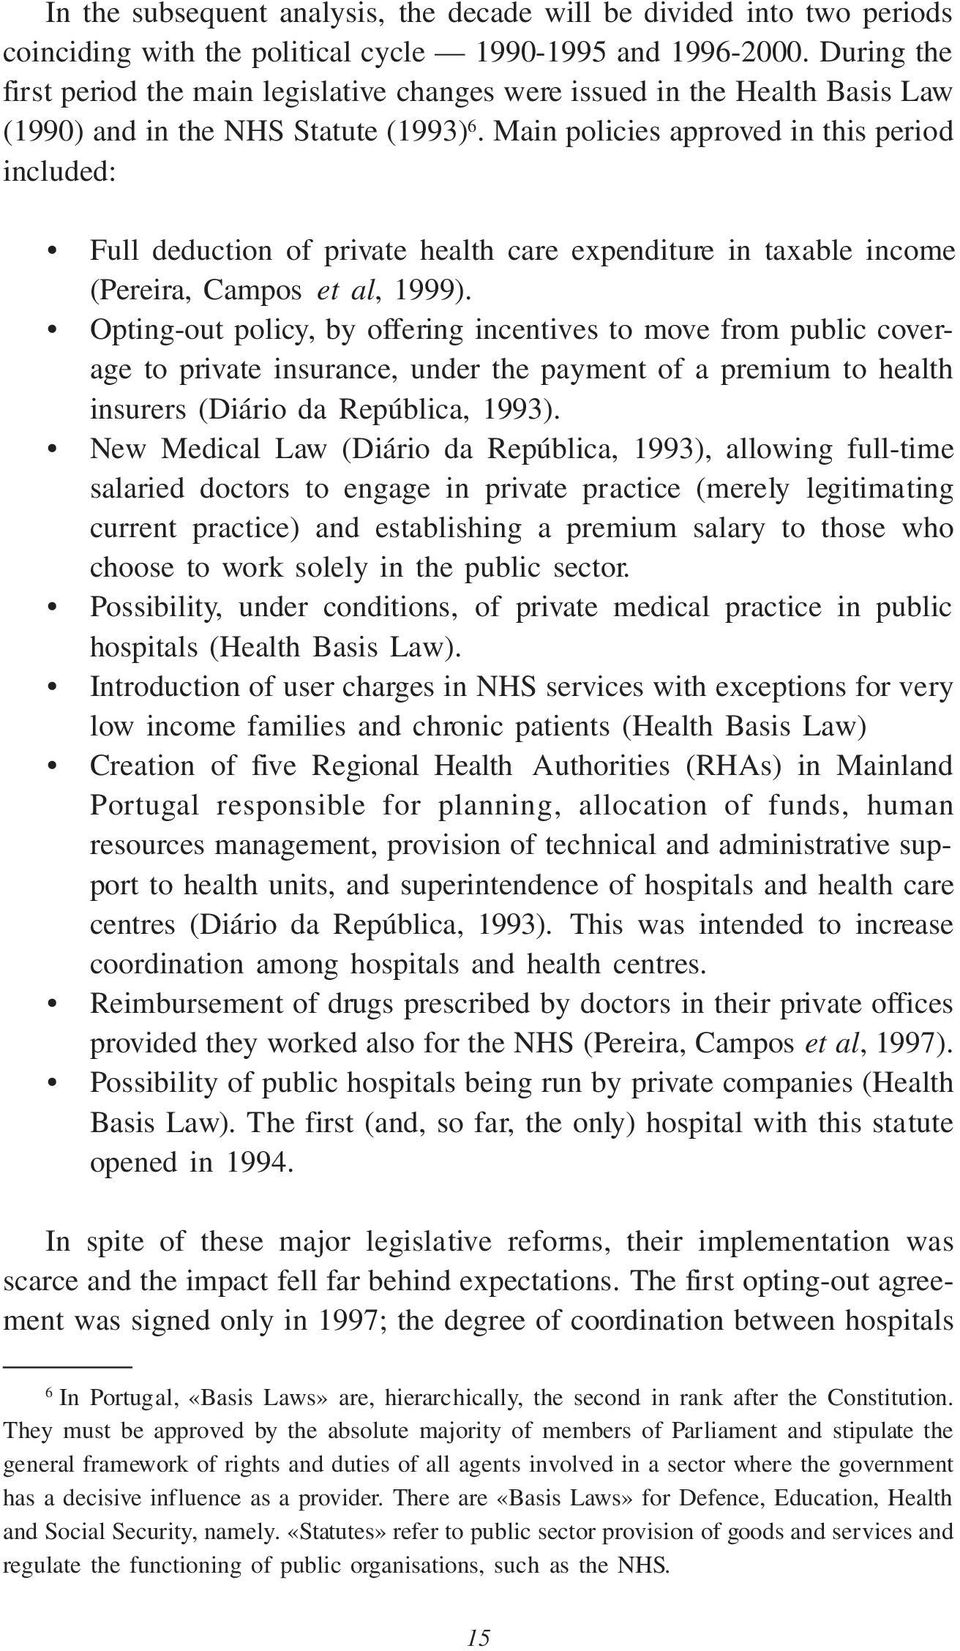 Main policies approved in this period included: Full deduction of private health care expenditure in taxable income (Pereira, Campos et al, 1999).